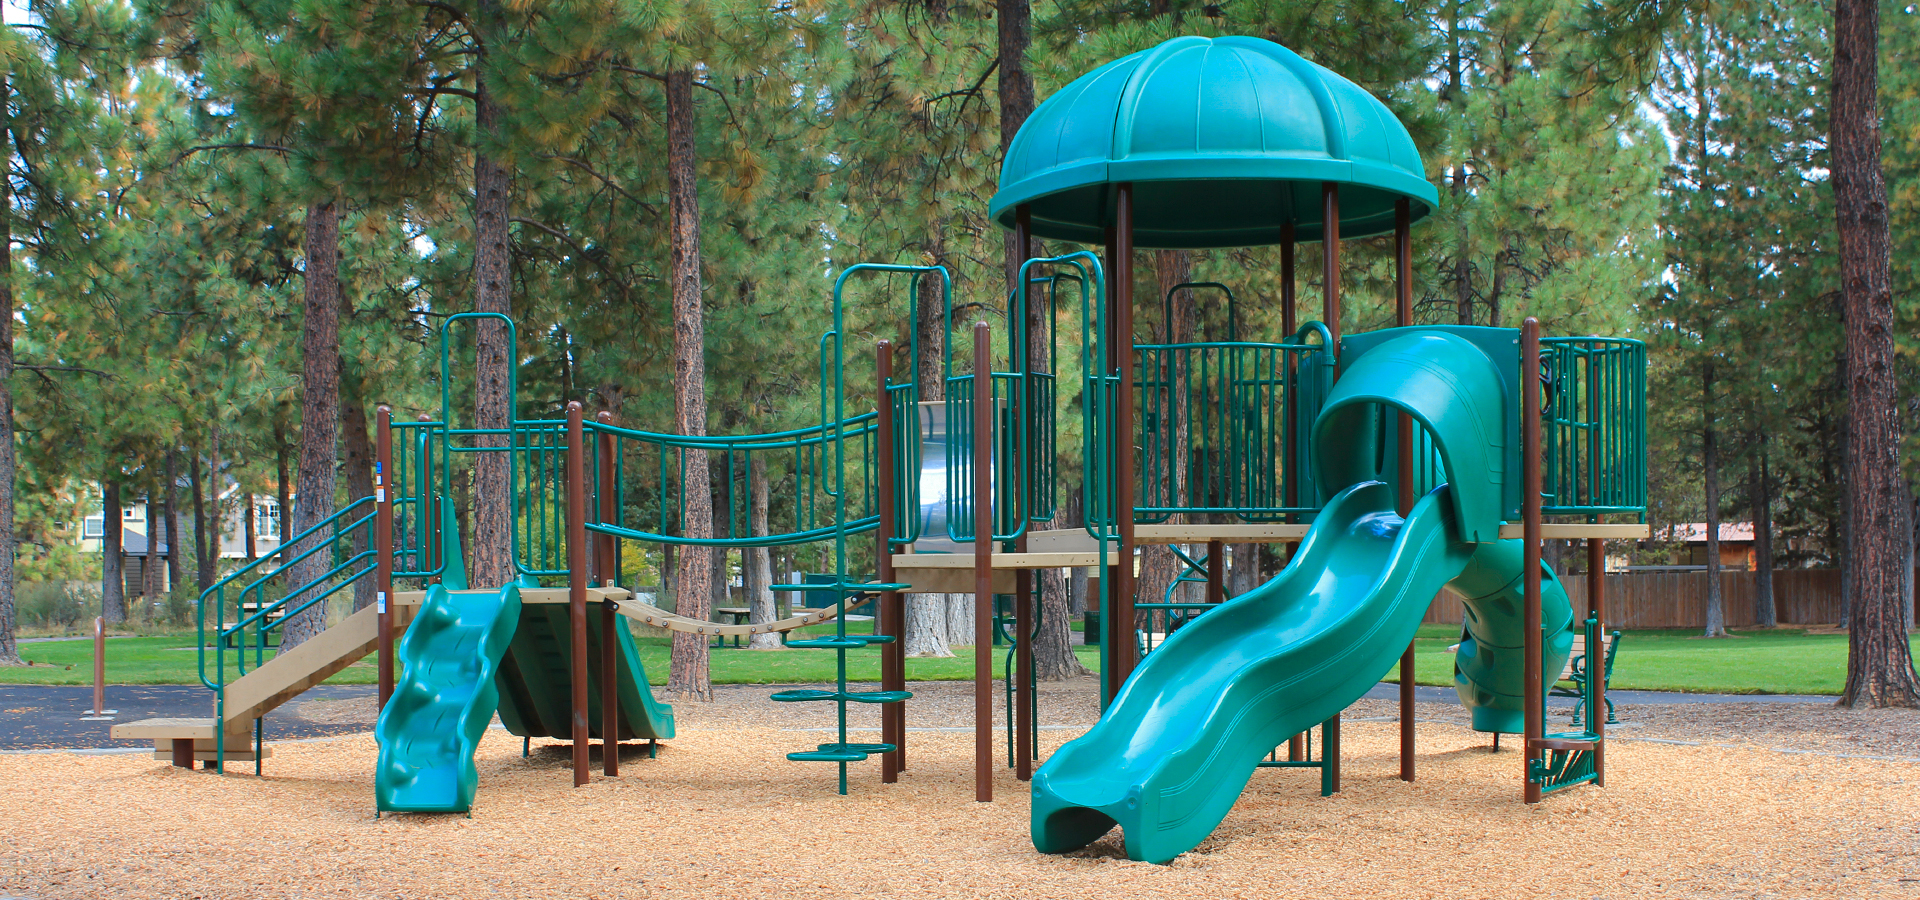 Image of play equipment at Hollygrape Park Playground.